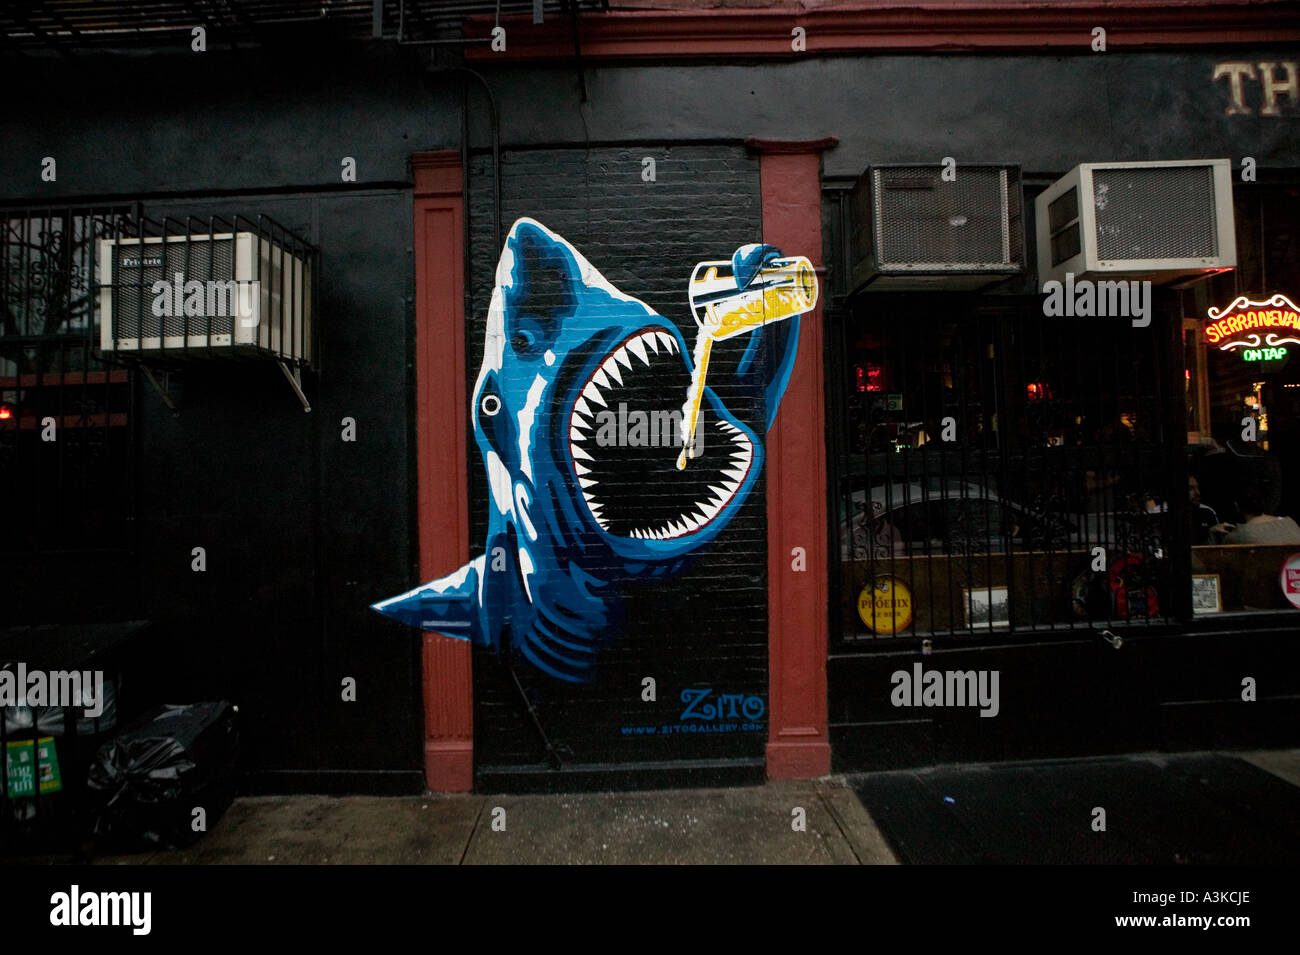 View of a beer drinking shark mural on the wall of the Spring Lounge bar on Spring Street in NoLIta New York - Stock Image